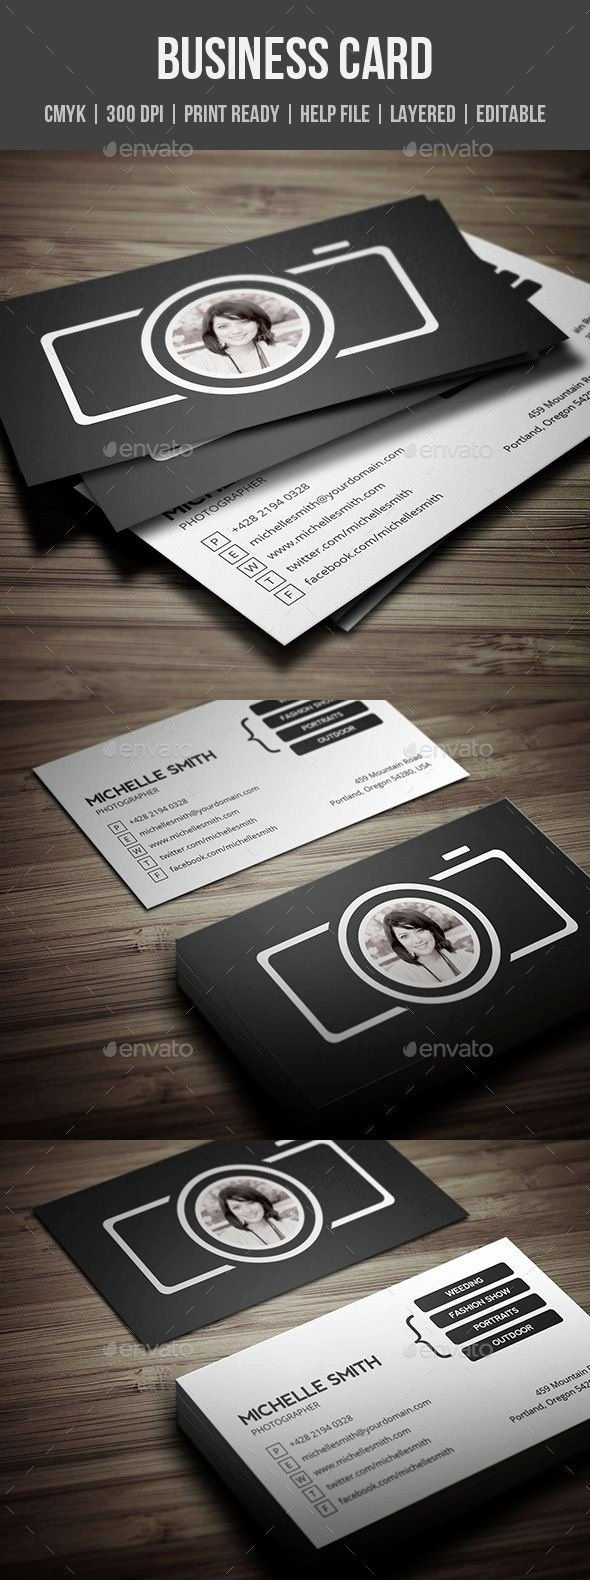 Photography Business Card Template Inspirational Best 25 Grapher Business Cards Ideas On Pinterest